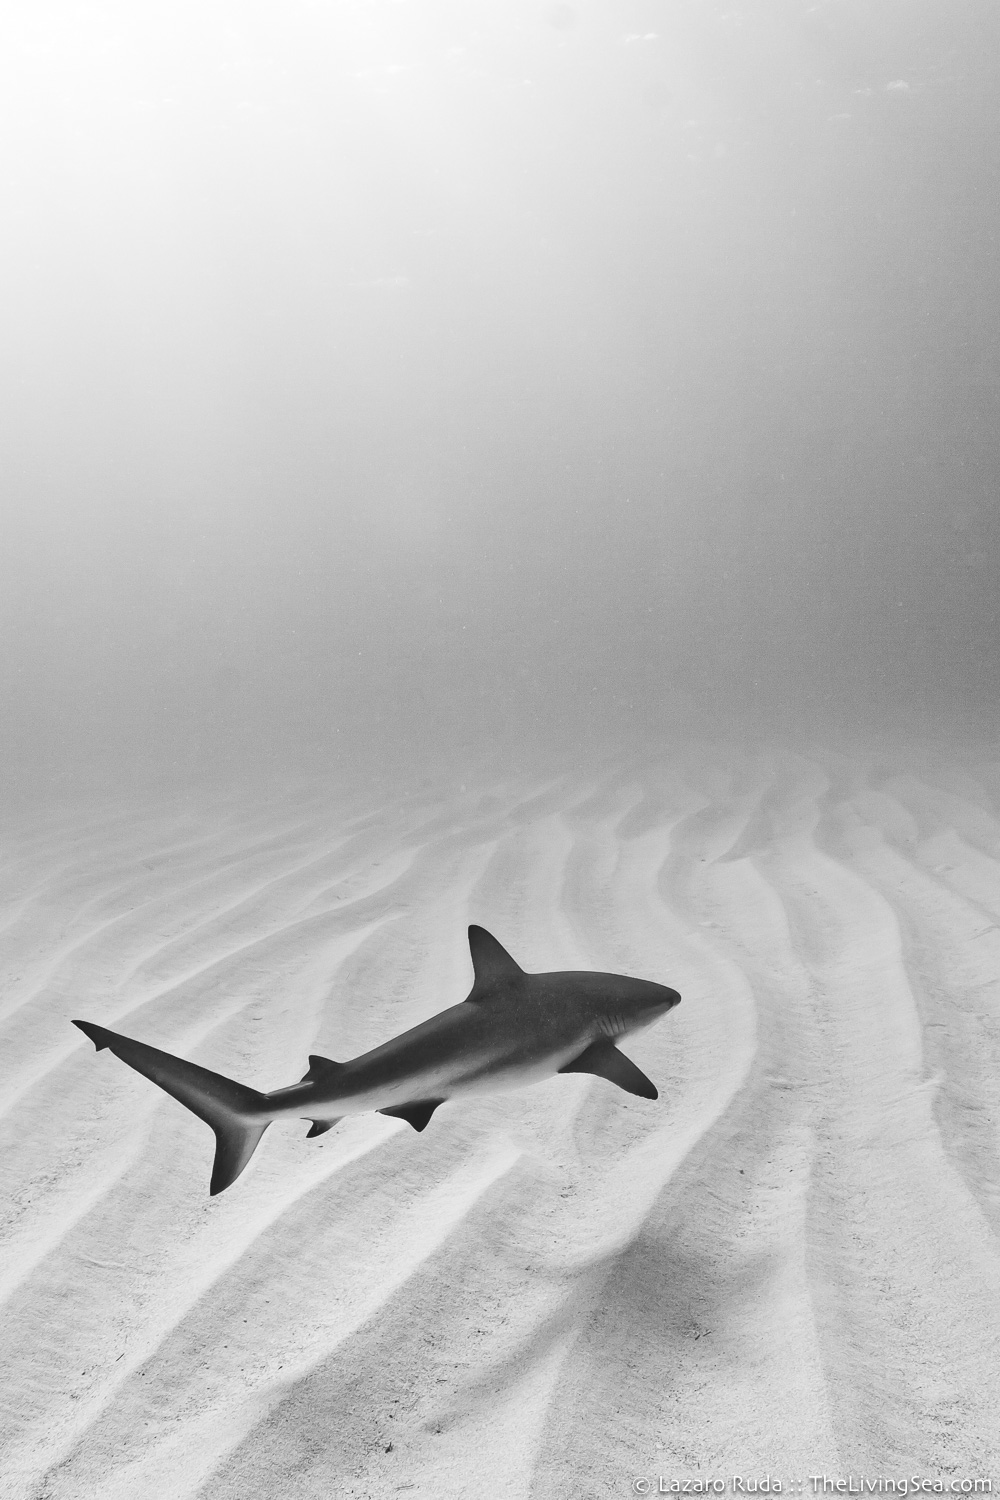 Caribbean reef shark: Carcharhinus perezi, Cartilaginous Fishes: Chondrichthyes, Fishes, Ground Sharks: Carcharhiniformes, Marine Life, Requiem Sharks: Carcharhindidae, Sharks, cat-shark, copyrighted, marine, ocean, portrait, underwater, underwater photo, wide angle